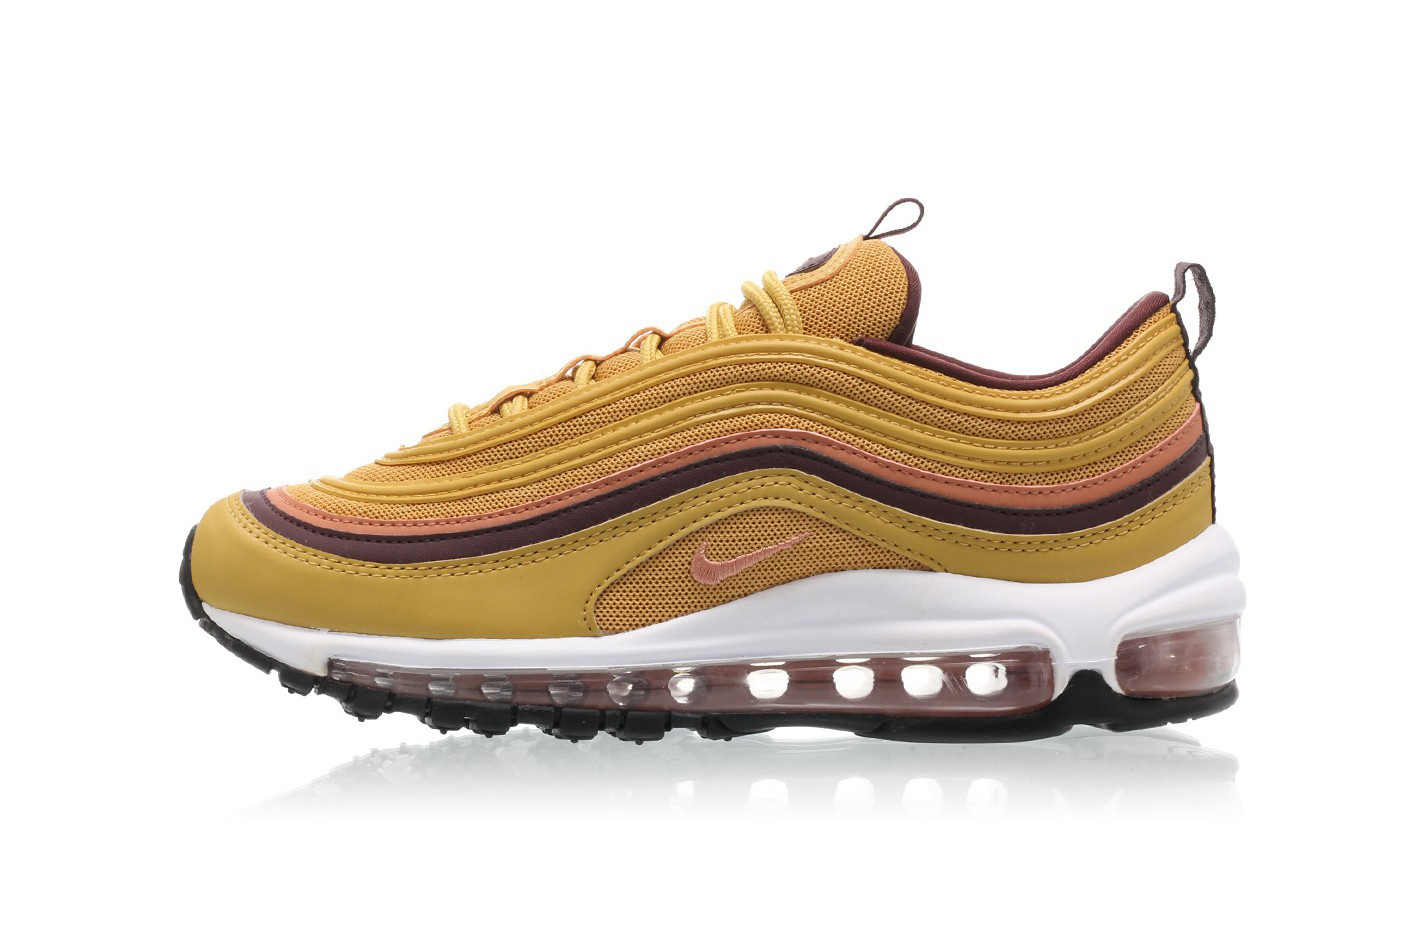 Nike Air Max 97 in Wheat Gold, Pink